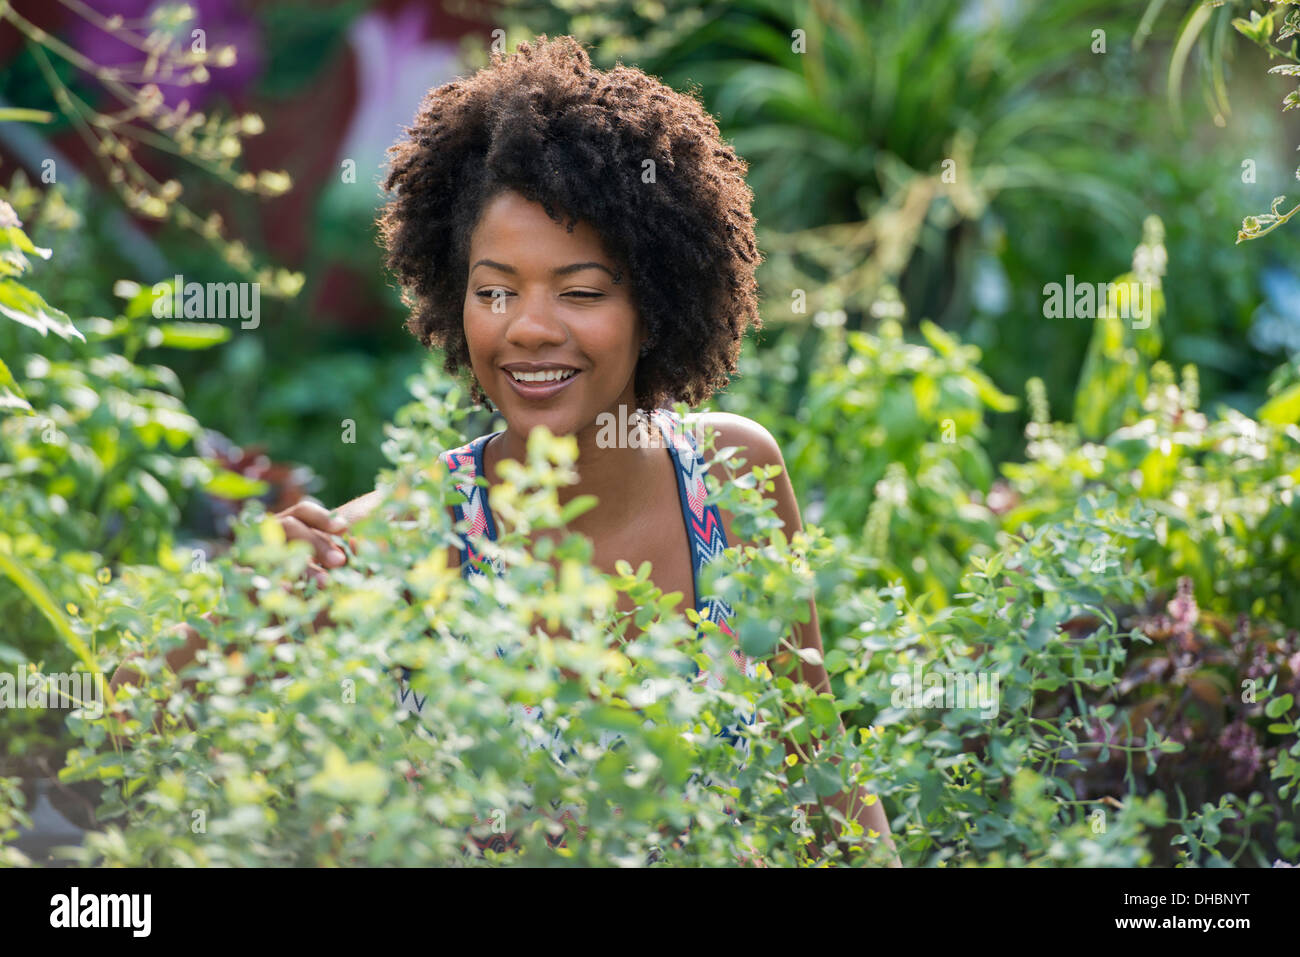 A woman standing in a plant nursery, surrounded by plants, flowers and foliage. Stock Photo